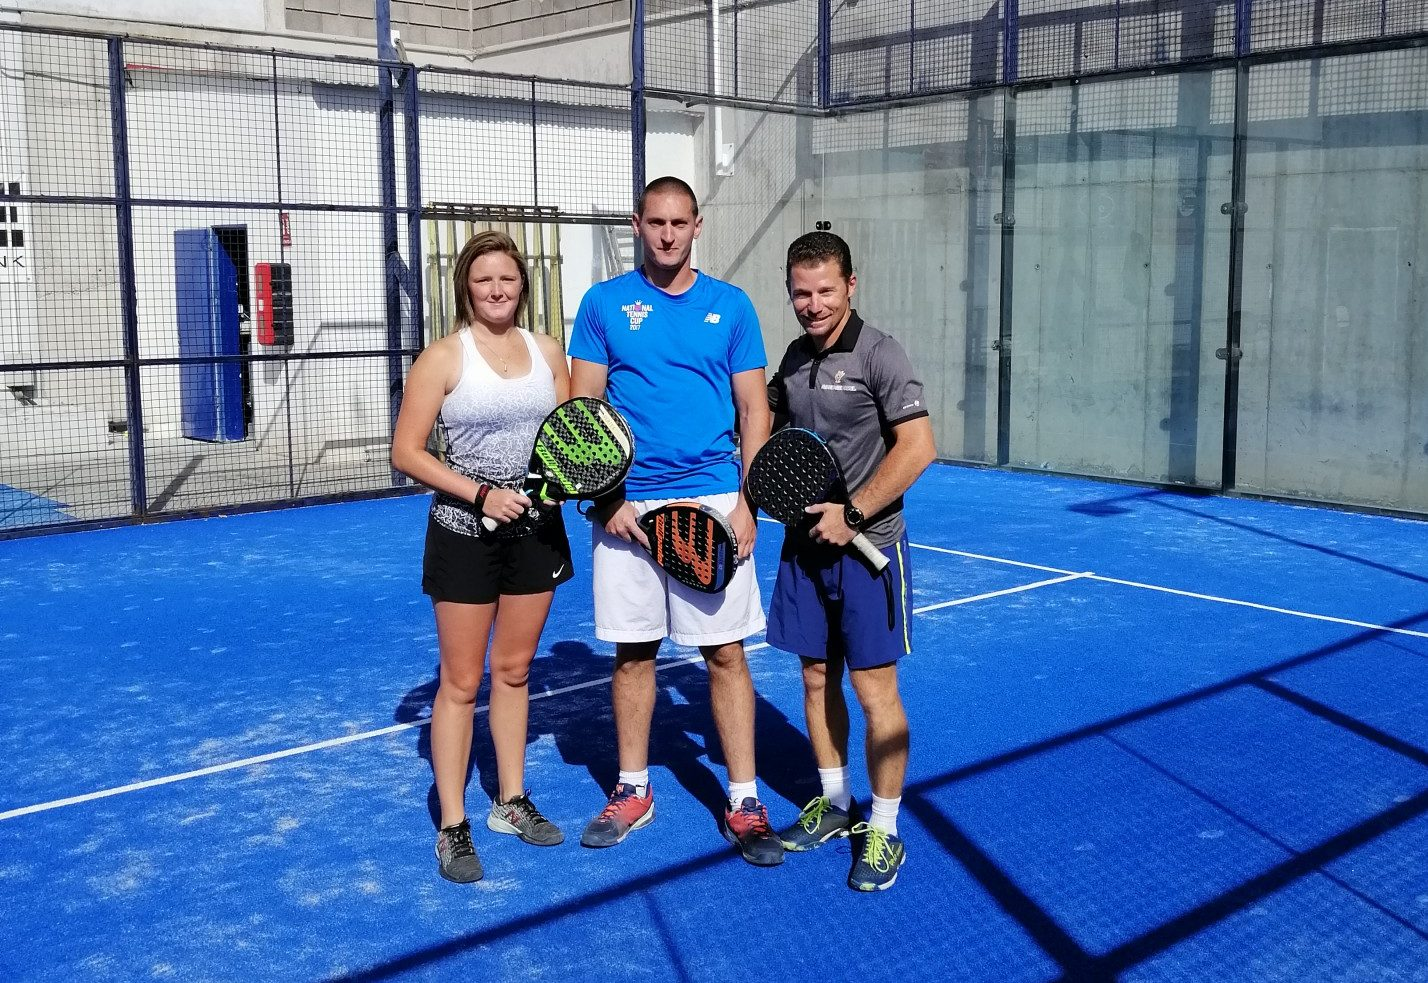 Stages padel à Ténérife : La destination qui monte !